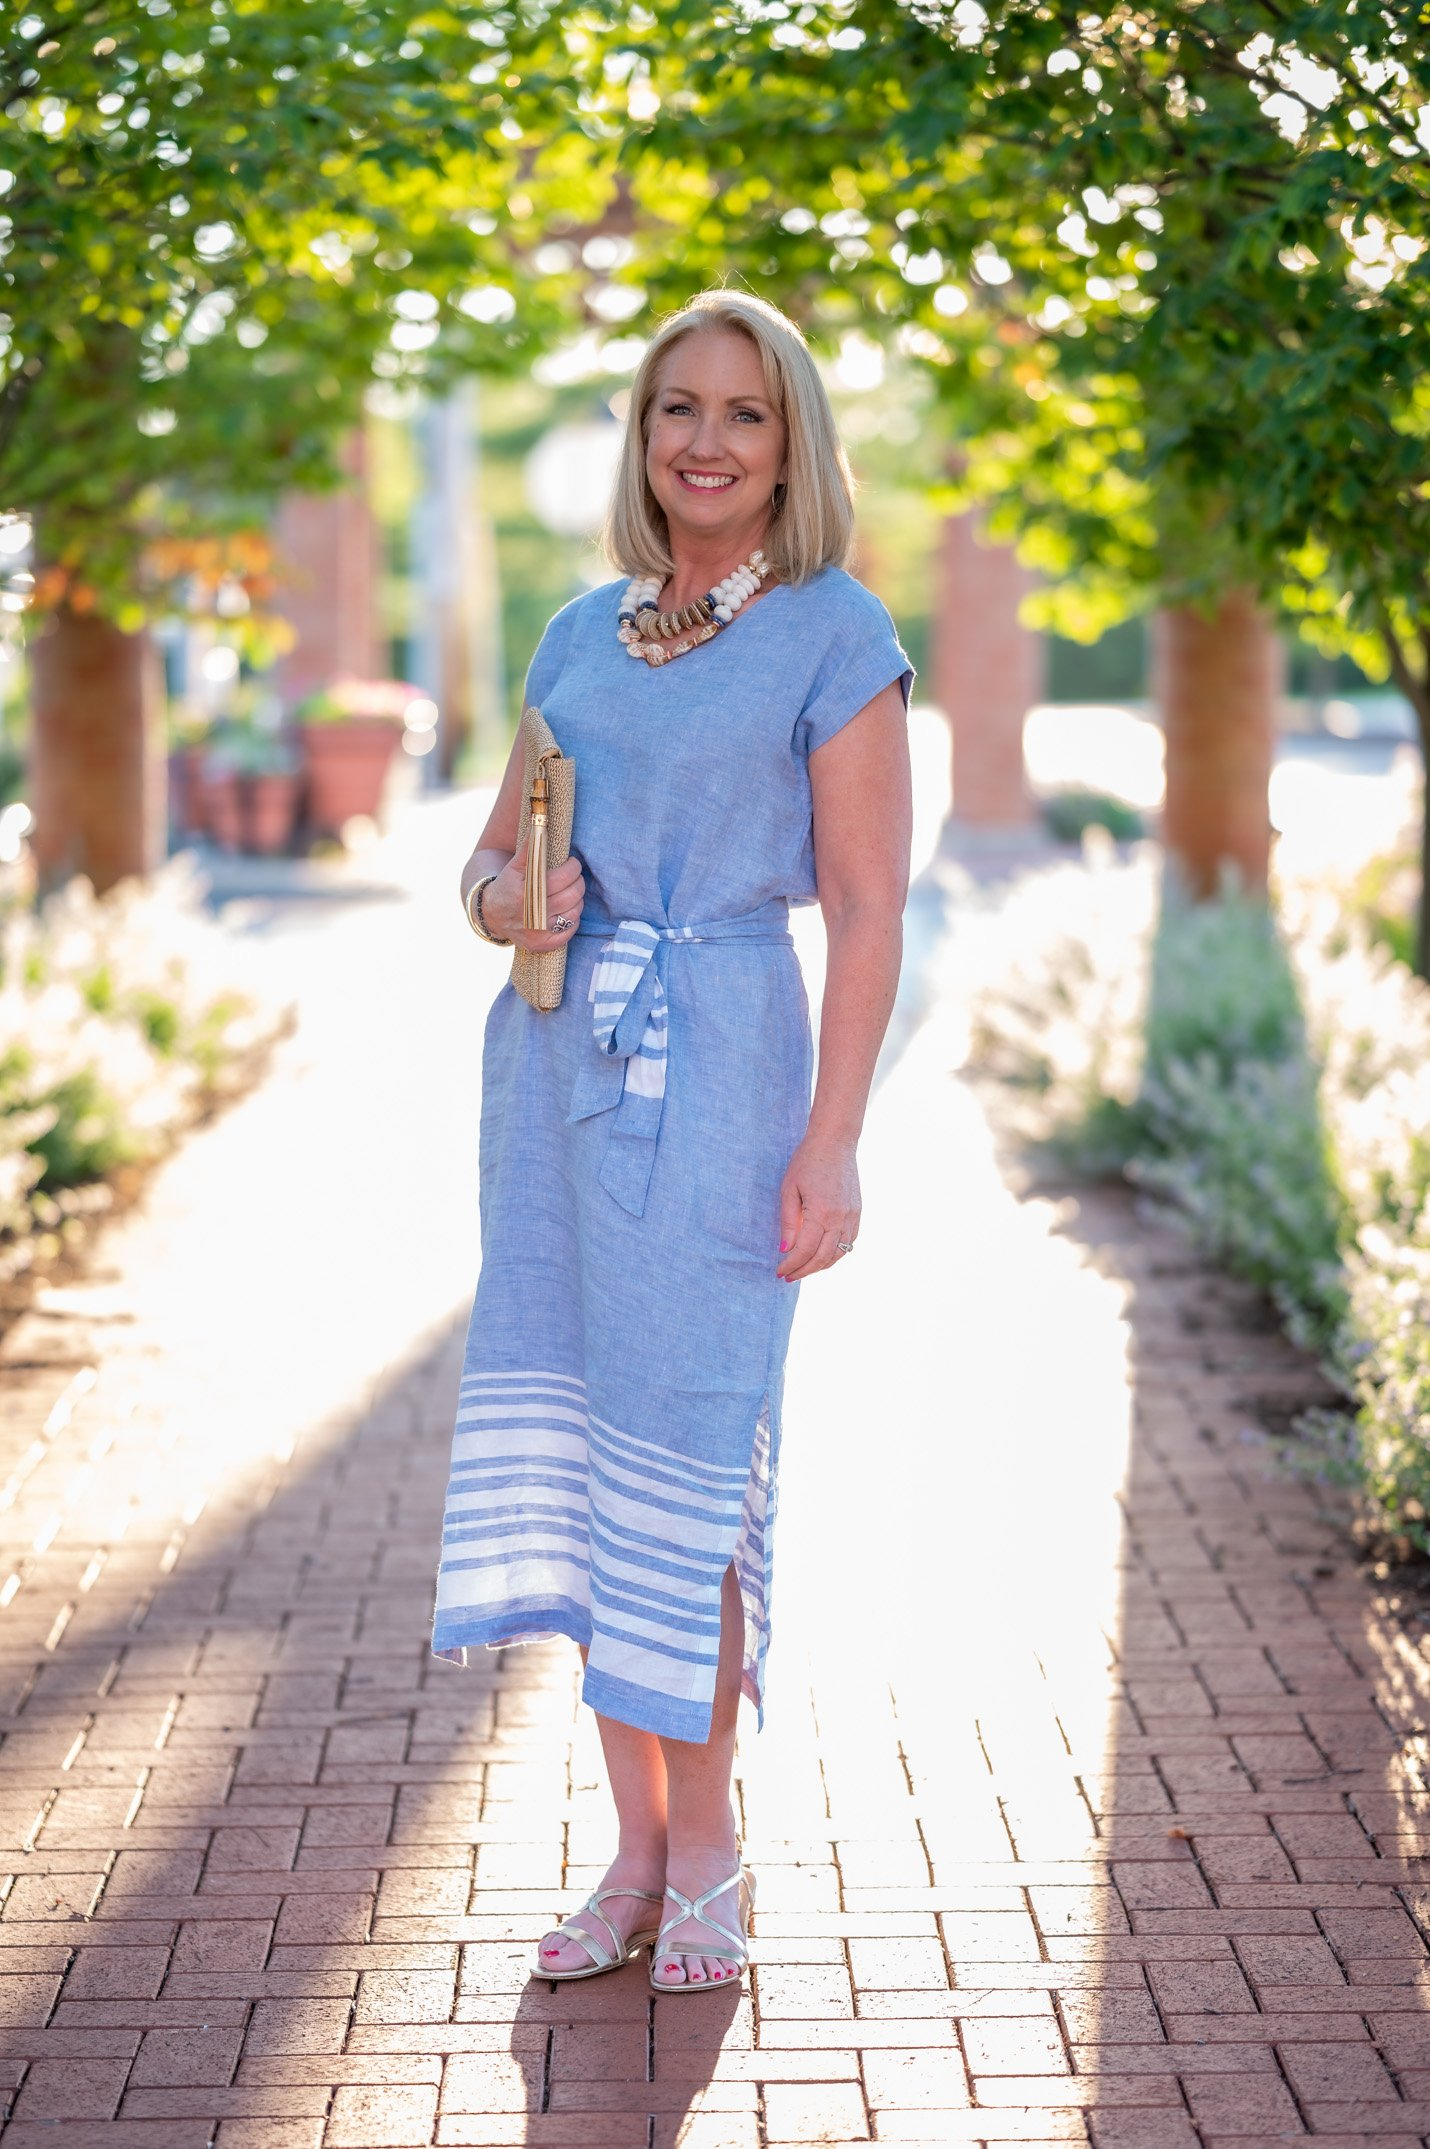 quintessential summer dress